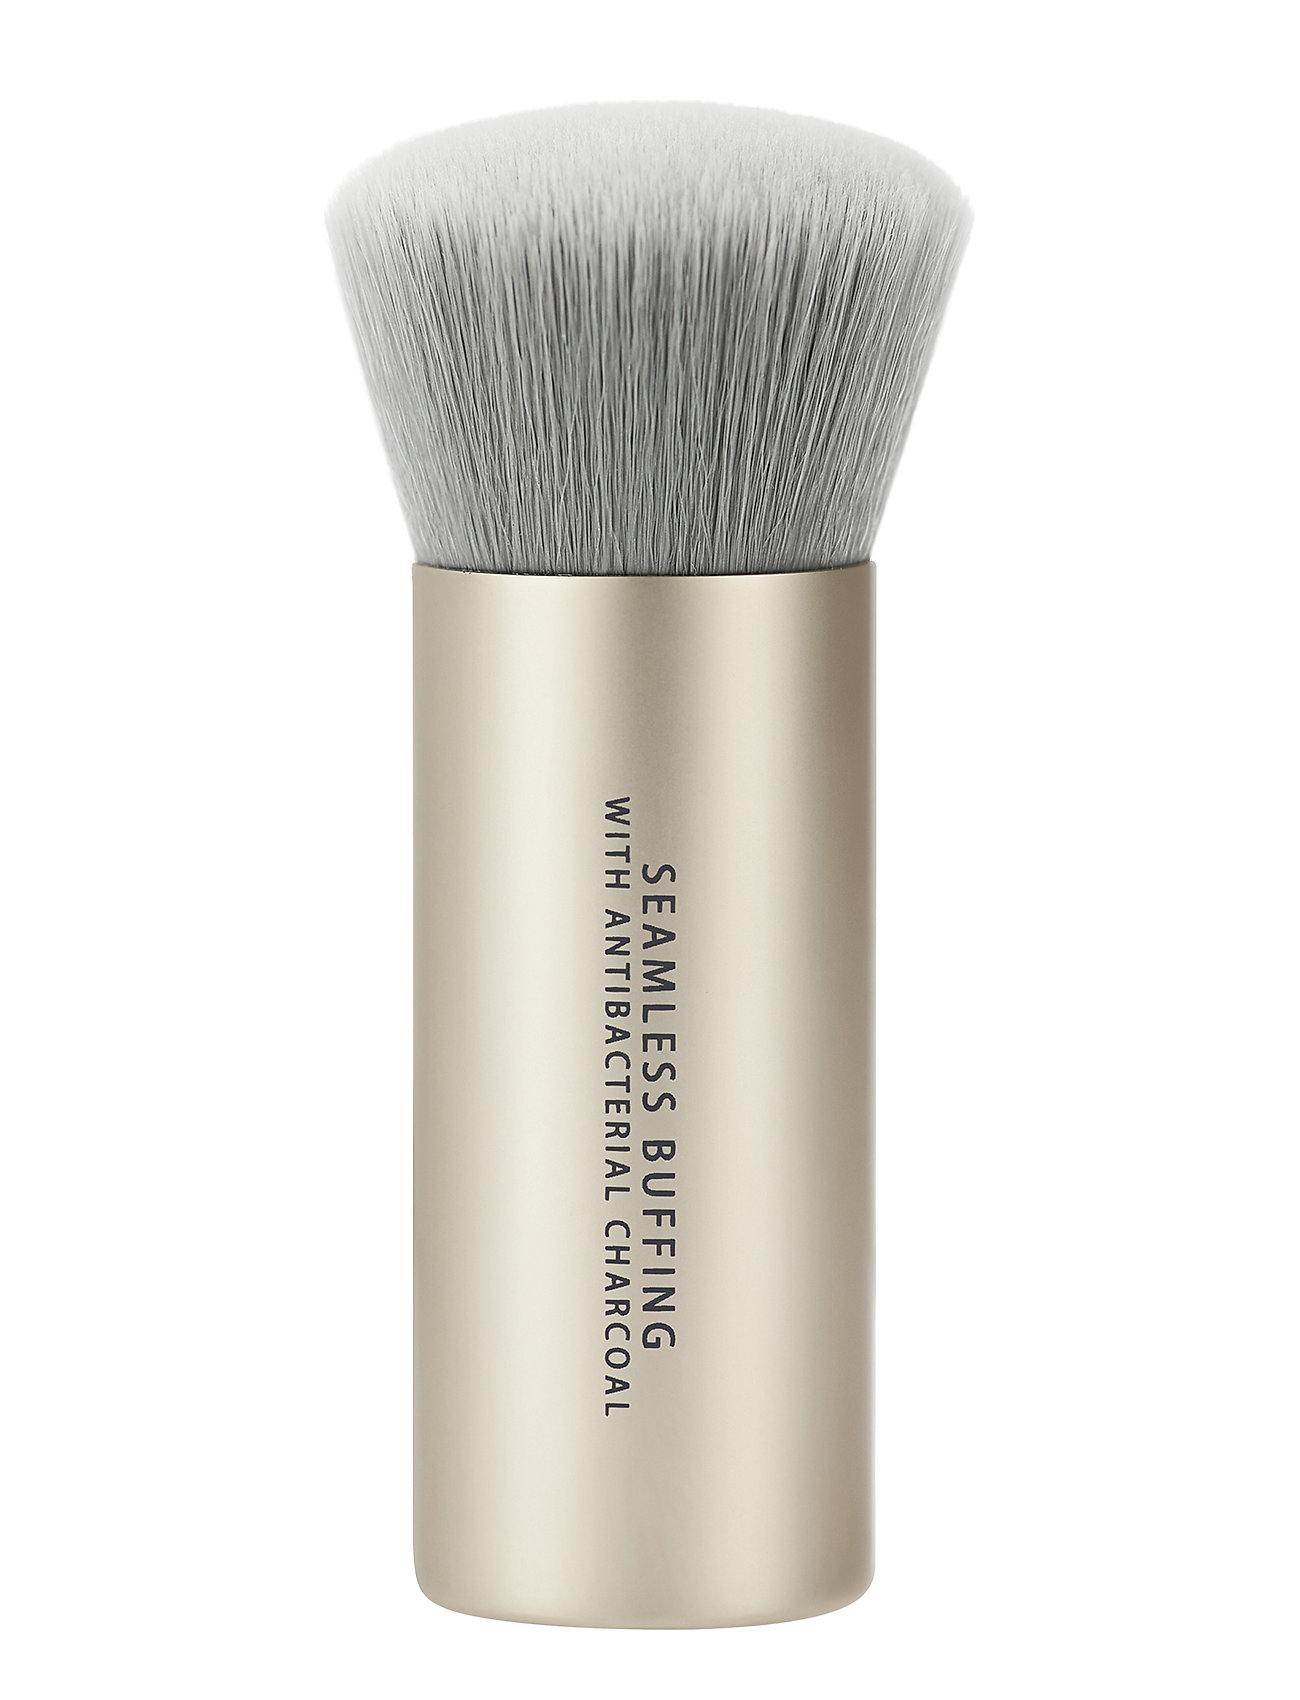 Image of Seamless Buffing Brush With Antibacterial Charcoal Beauty WOMEN Makeup Makeup Brushes Face Brushes Nude BareMinerals (3406161635)